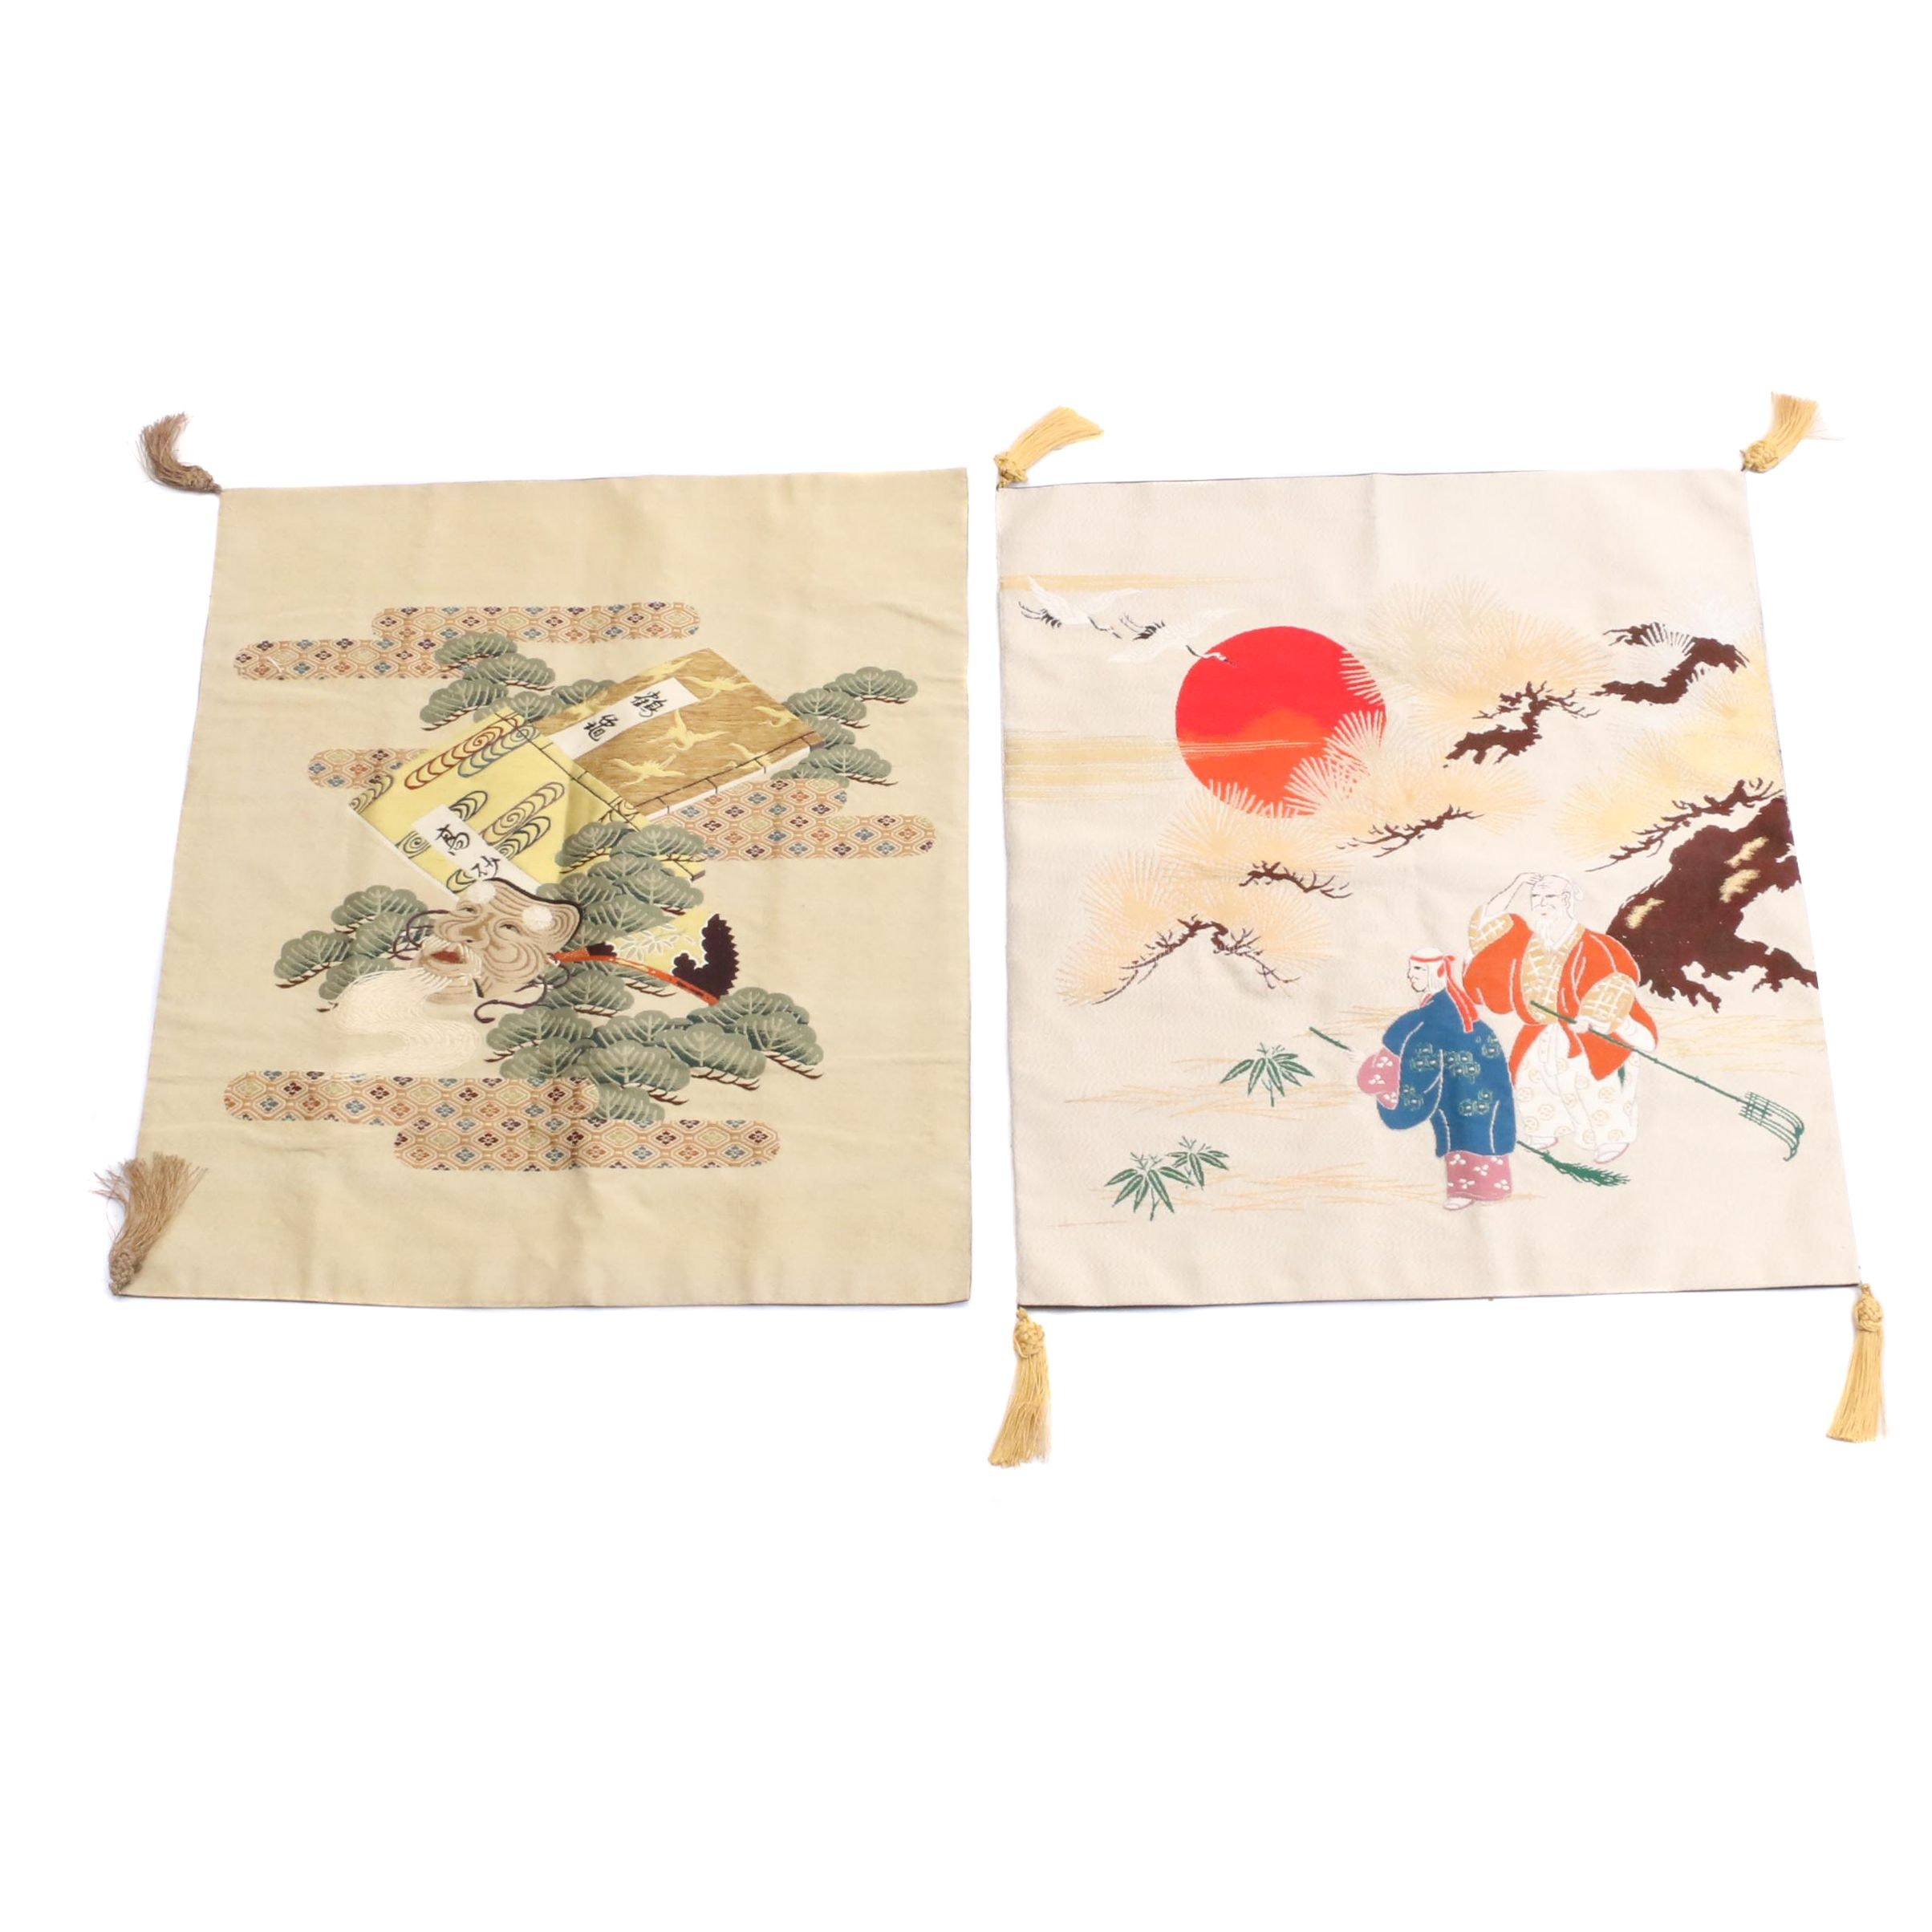 Vintage Japanese Silk Embroidered Pillow Covers